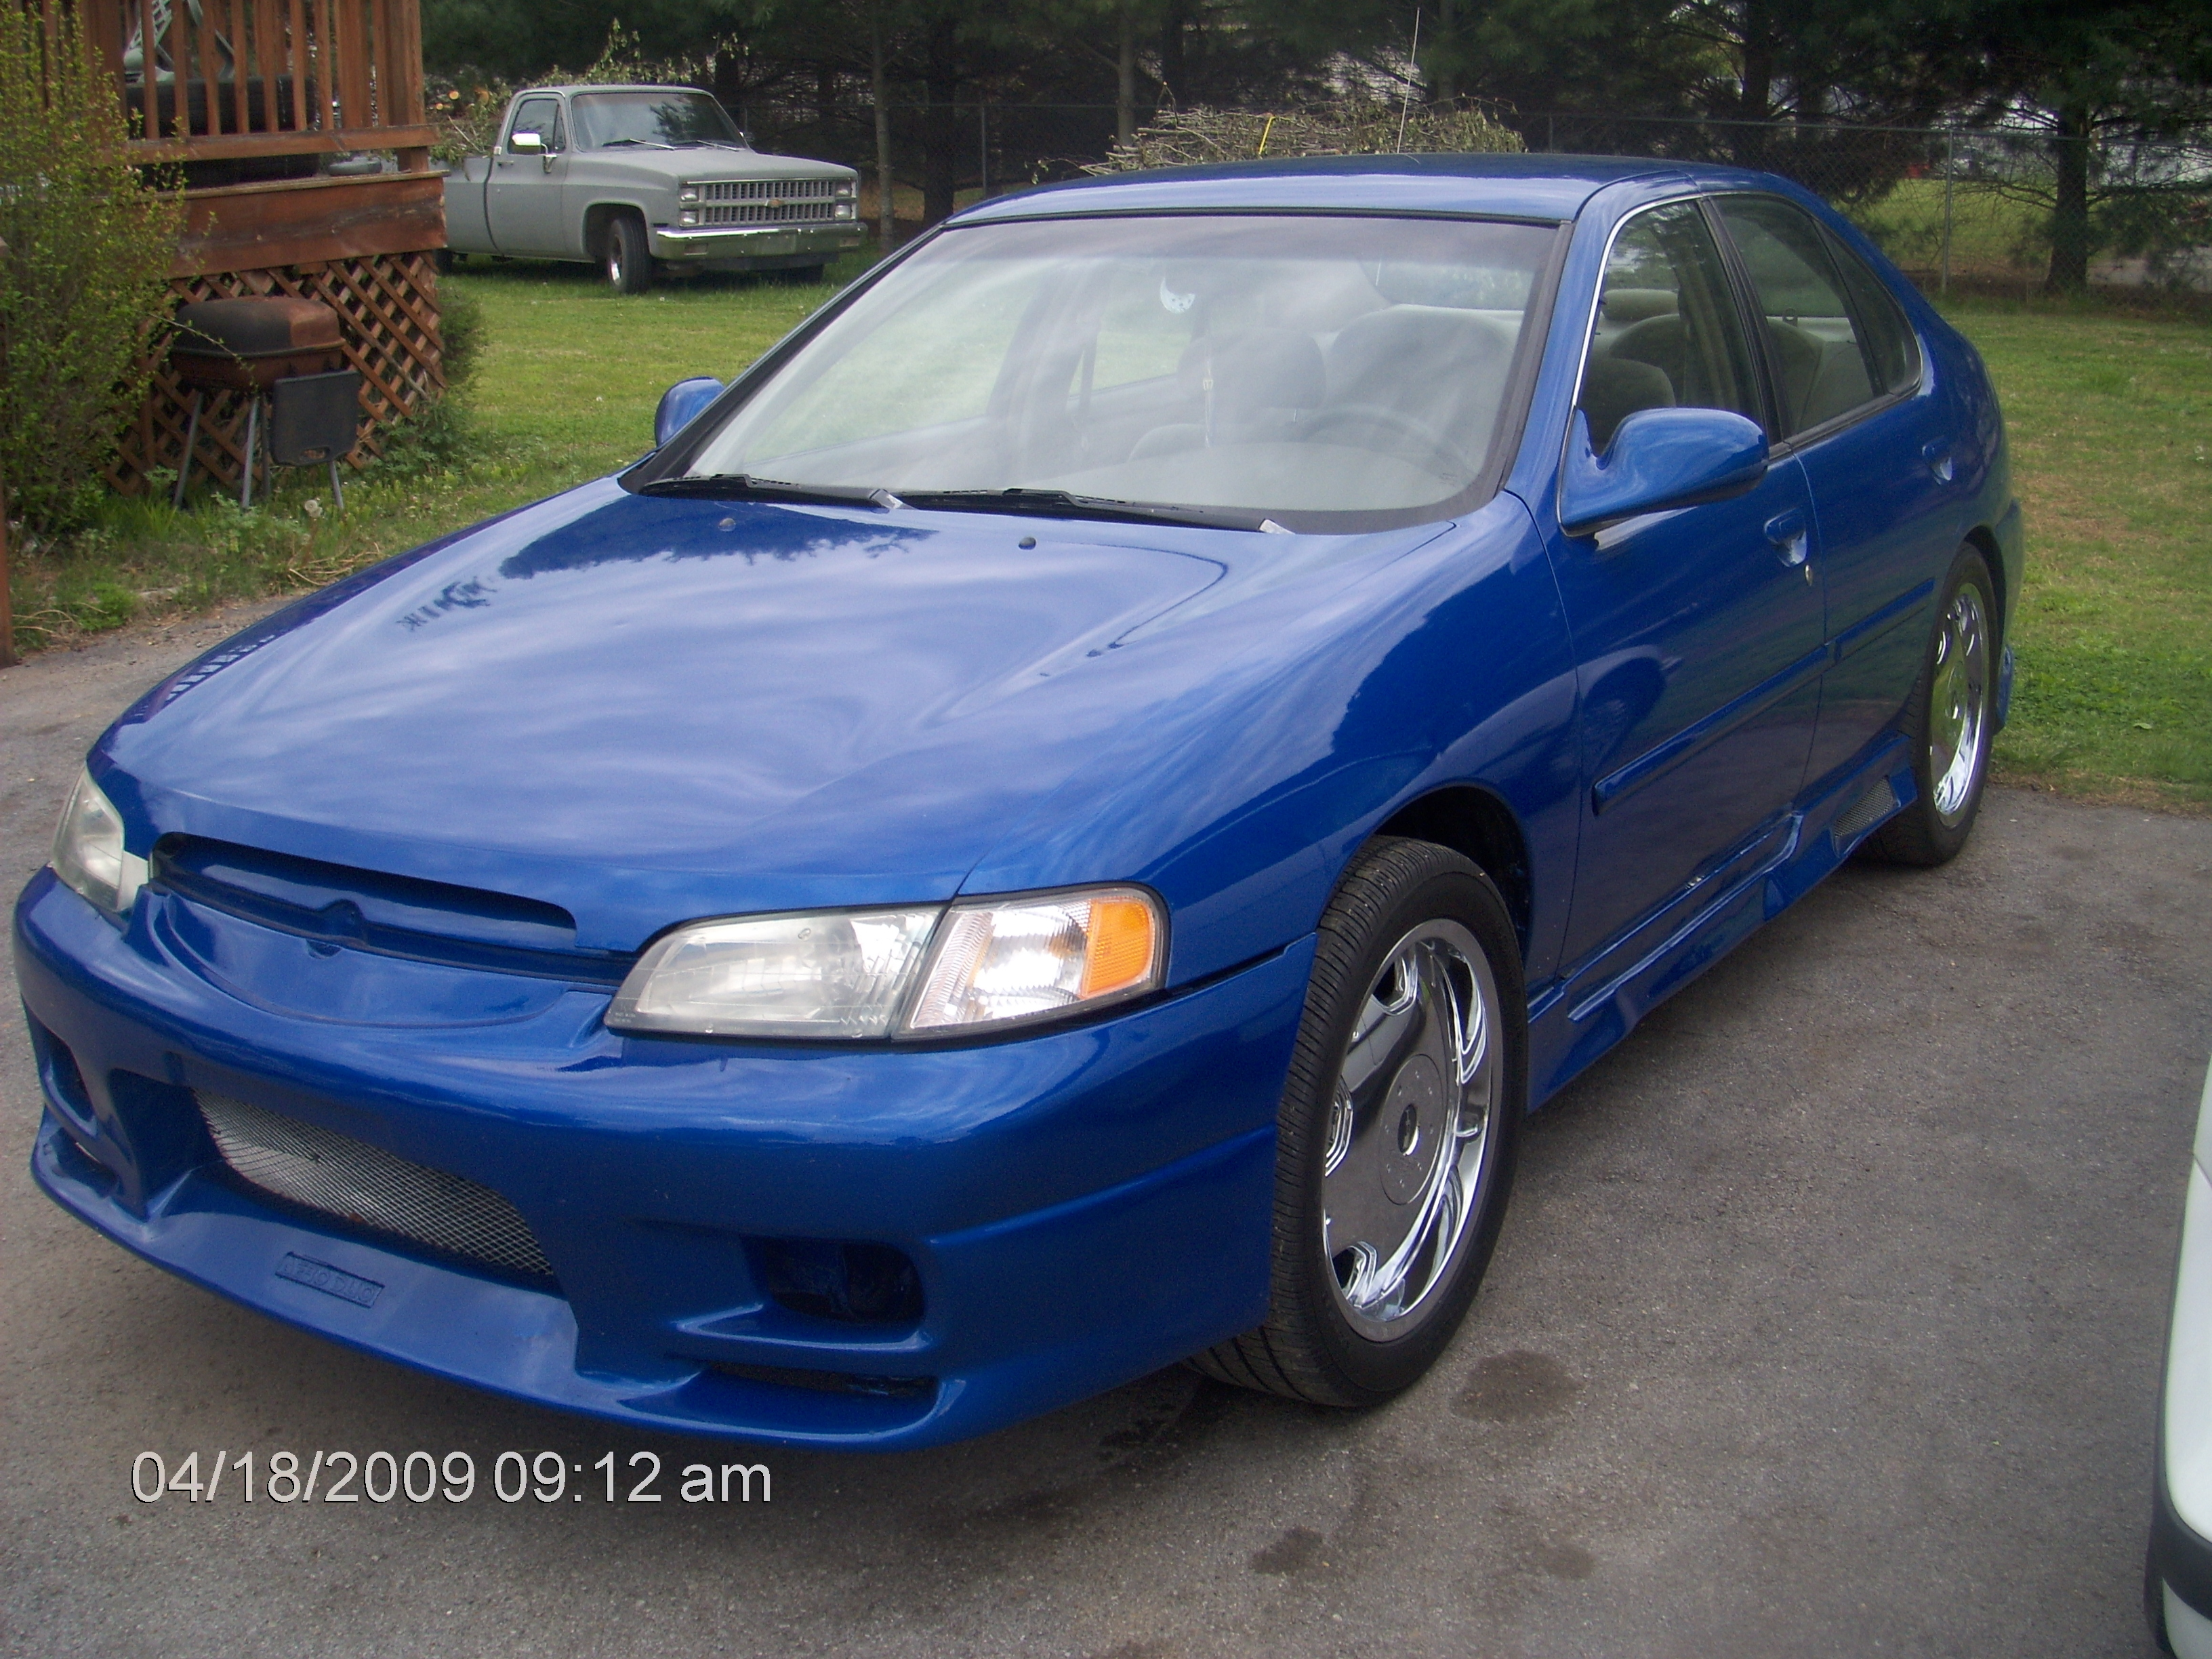 Datboykrp 1998 nissan altima specs photos modification info at datboykrp 1998 nissan altima 33165090006original sciox Choice Image